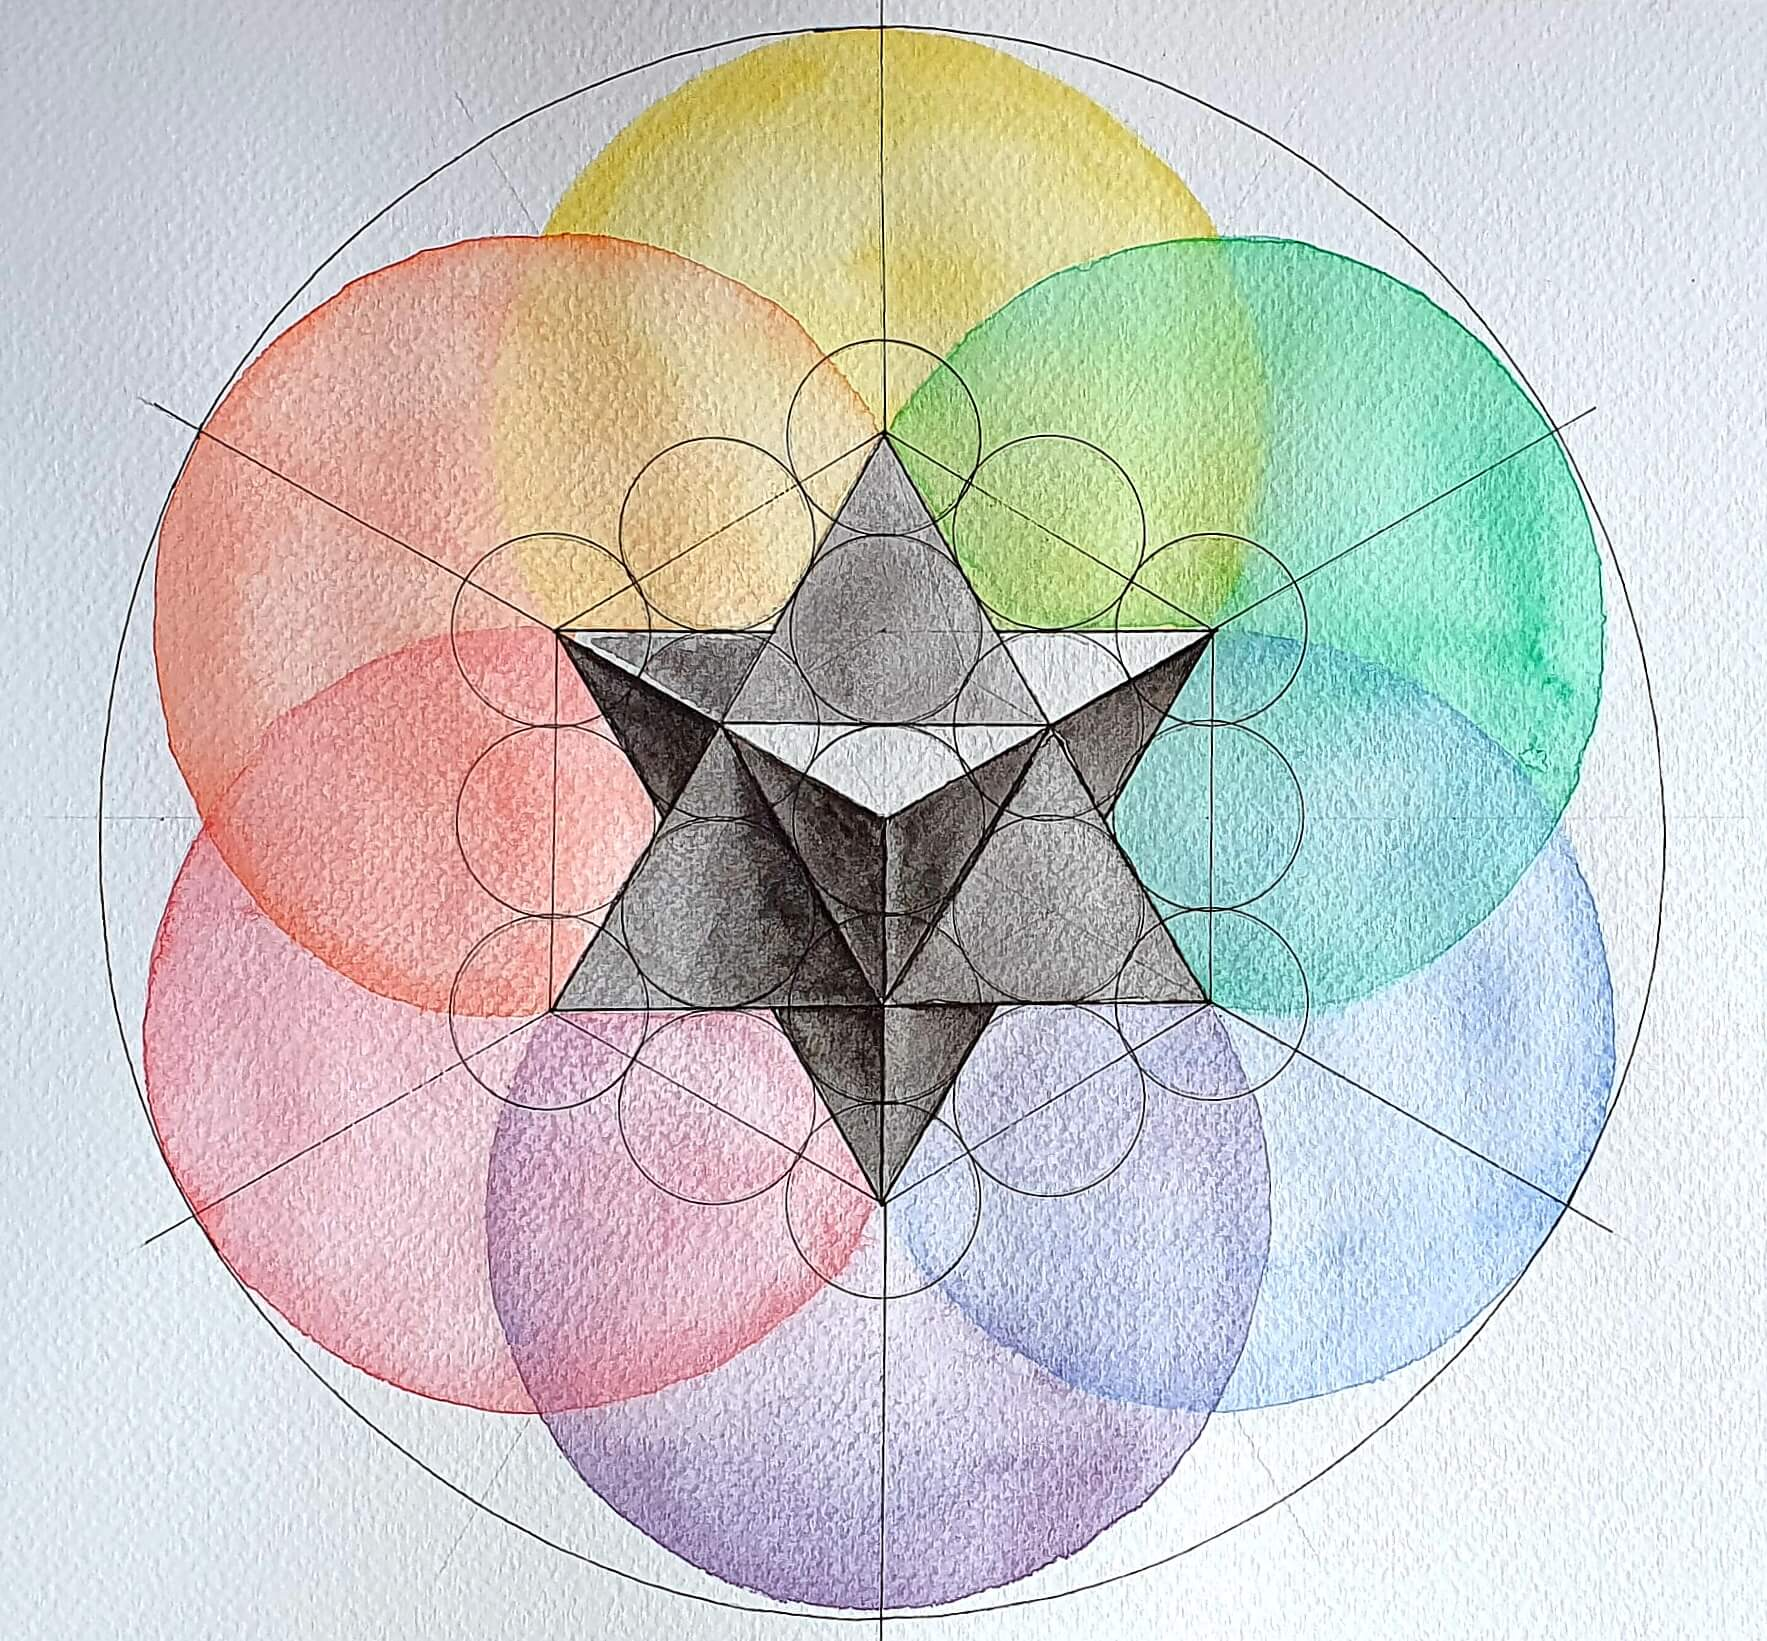 The Merkaba by Asta Puodzeniene with Openhand